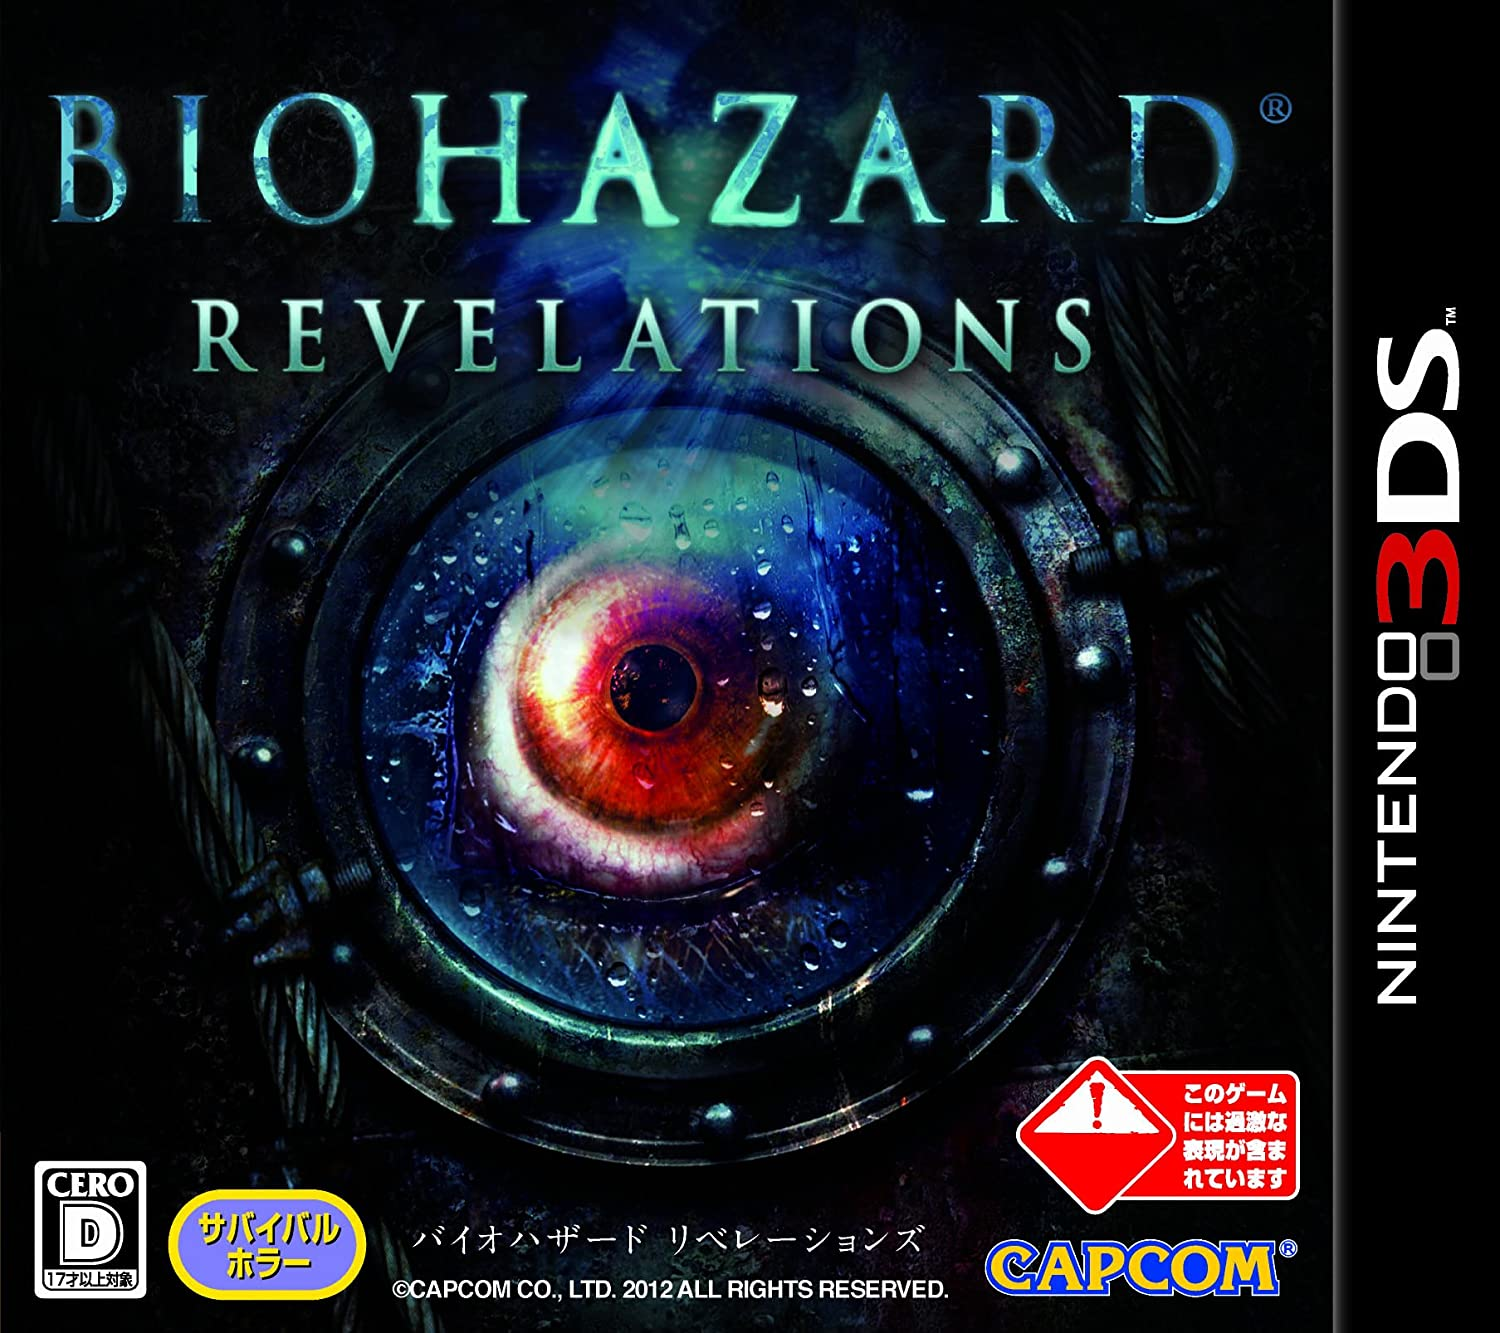 Safety and trust BioHazard: Revelations Import Max 51% OFF Japan